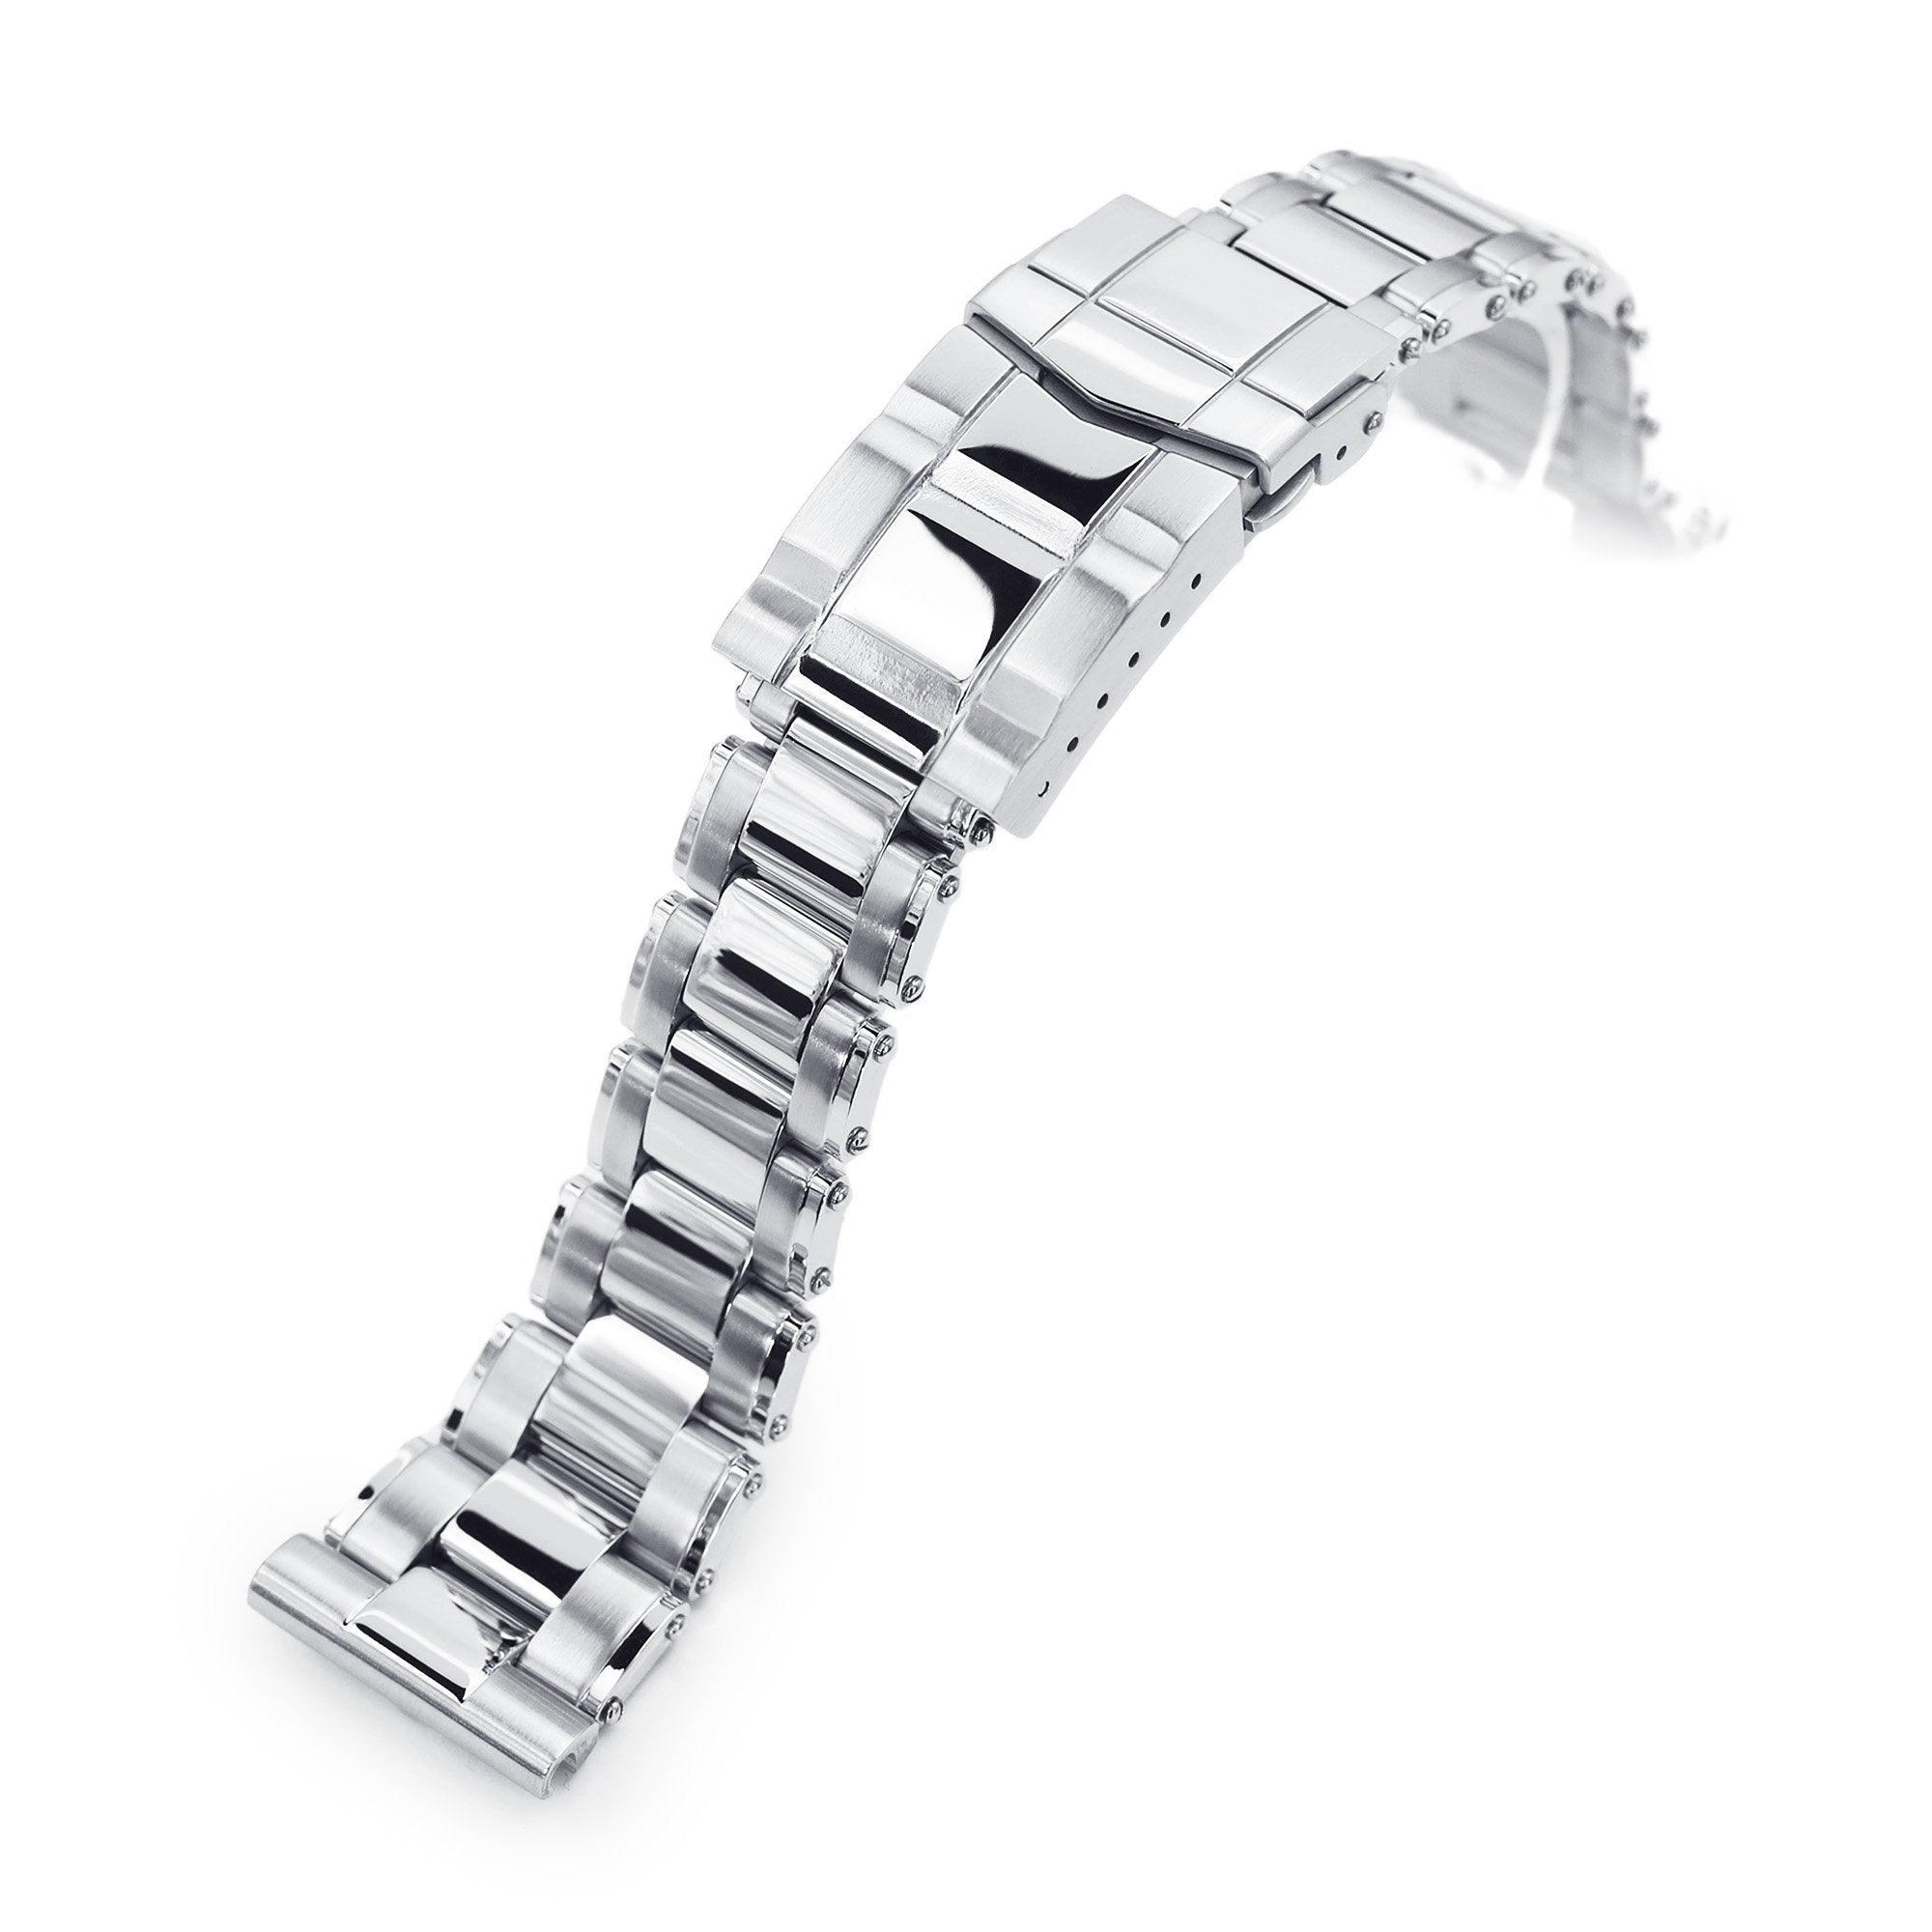 22mm Metabind 316L Stainless Steel Watch Bracelet Straight End Brushed with Polished Center SUB Clasp Strapcode Watch Bands